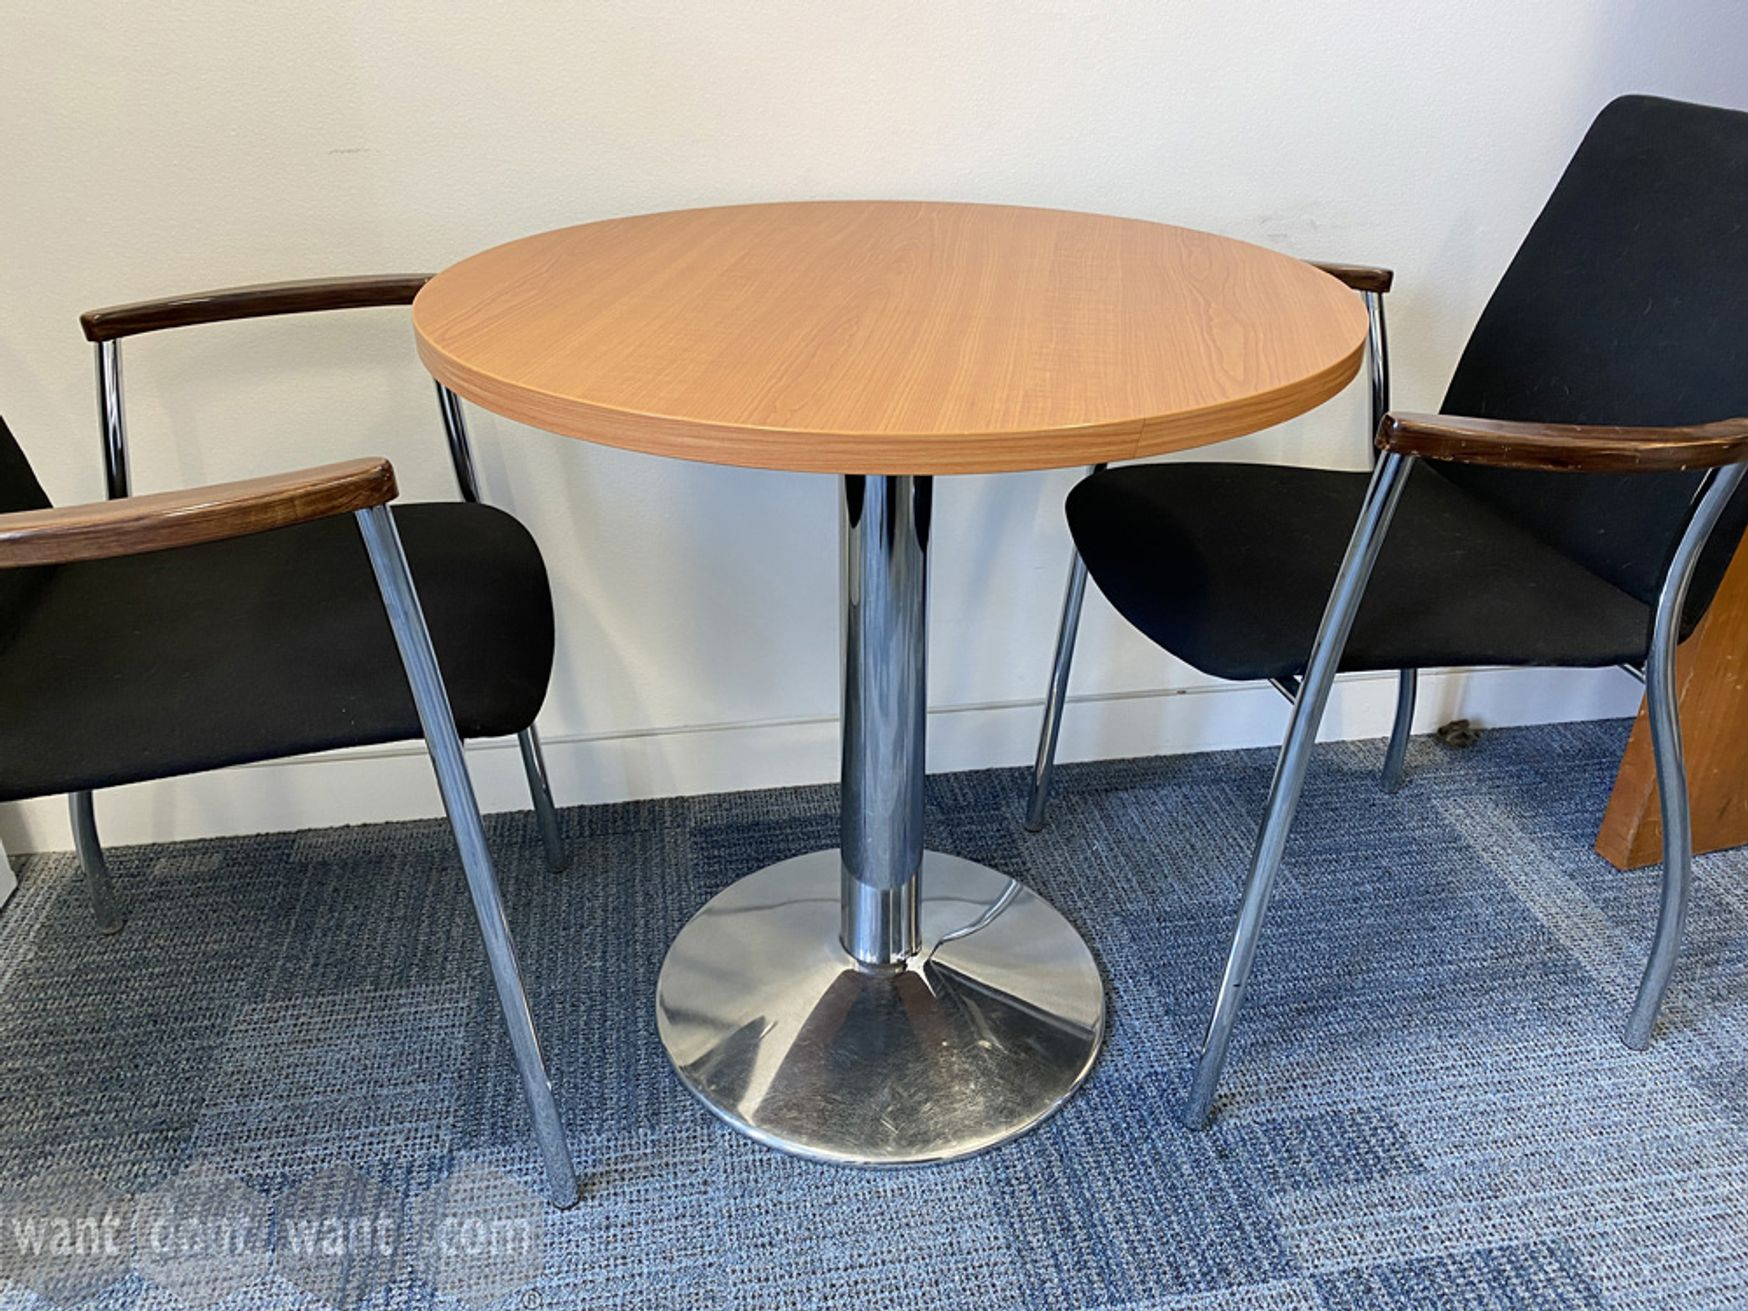 Used circular meeting tables with beech top and chrome column base. 700mm dia